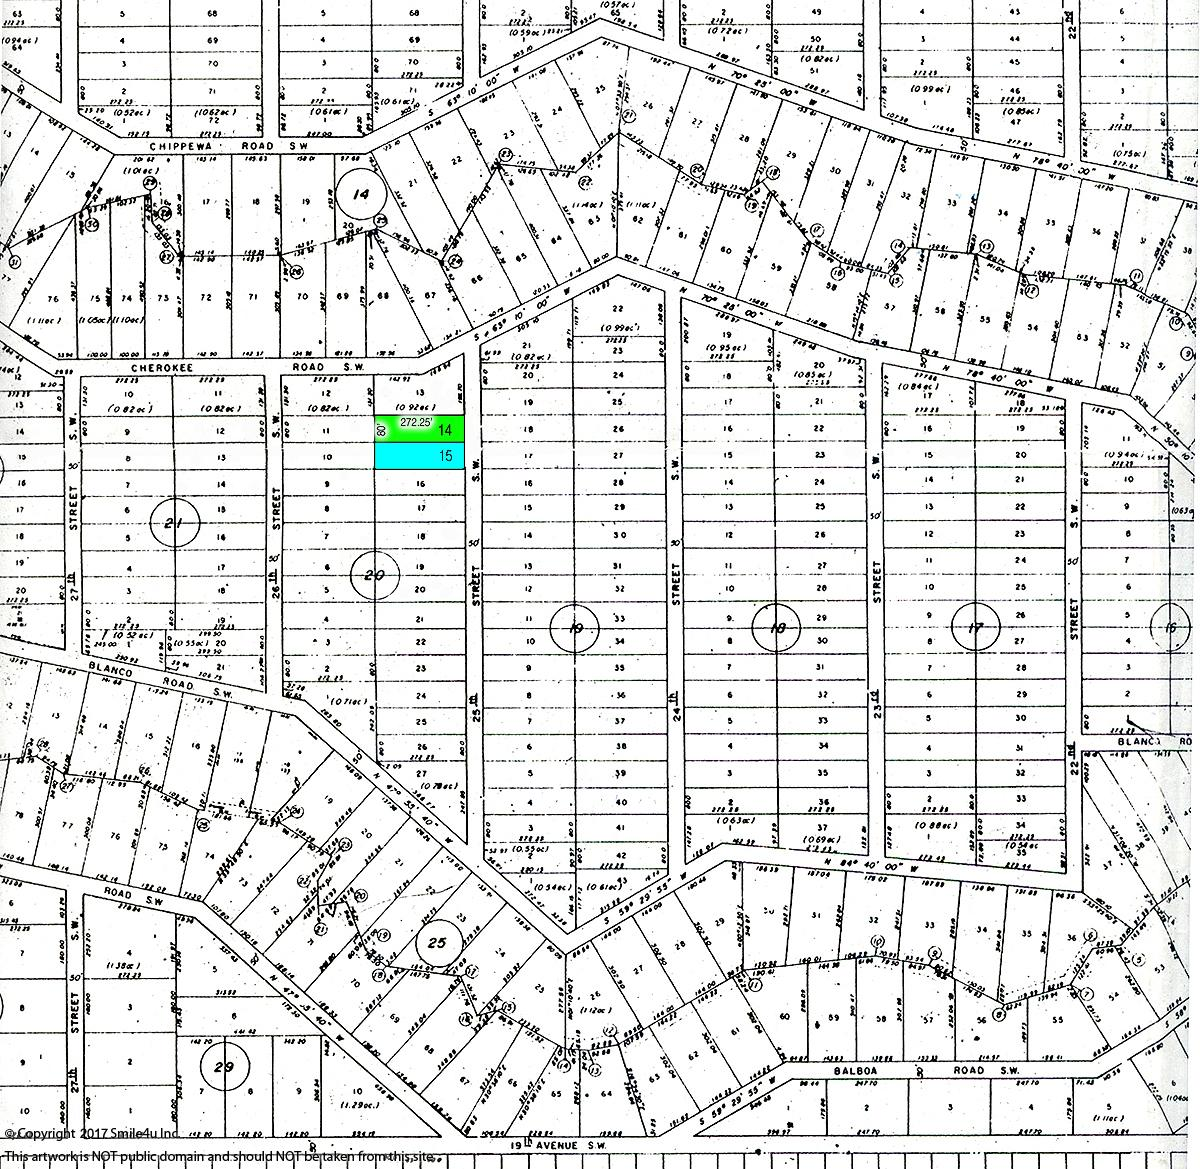 492320_watermarked_Rio Rancho U4 B20 L14-15 Parcel Map.jpg